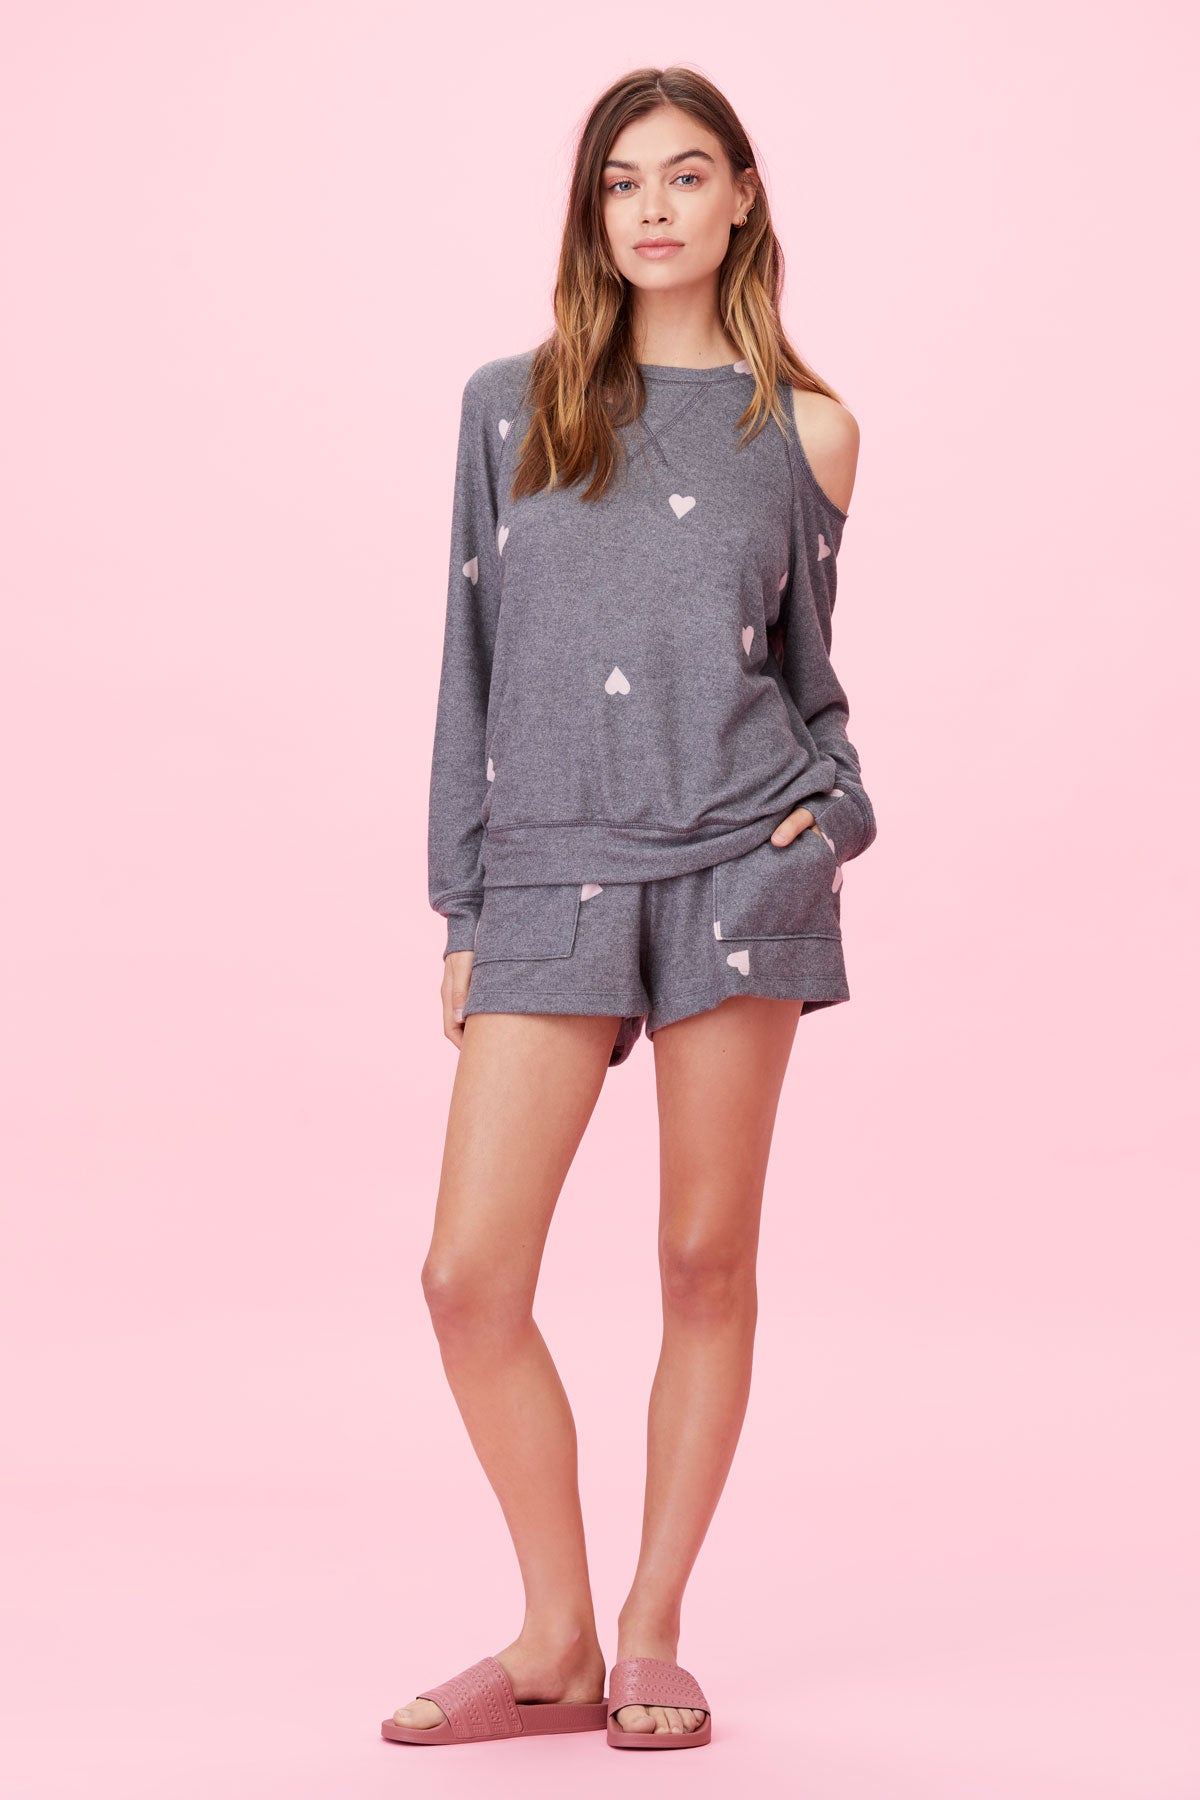 LNA Brushed Heart Print Short in Grey with Pink Hearts